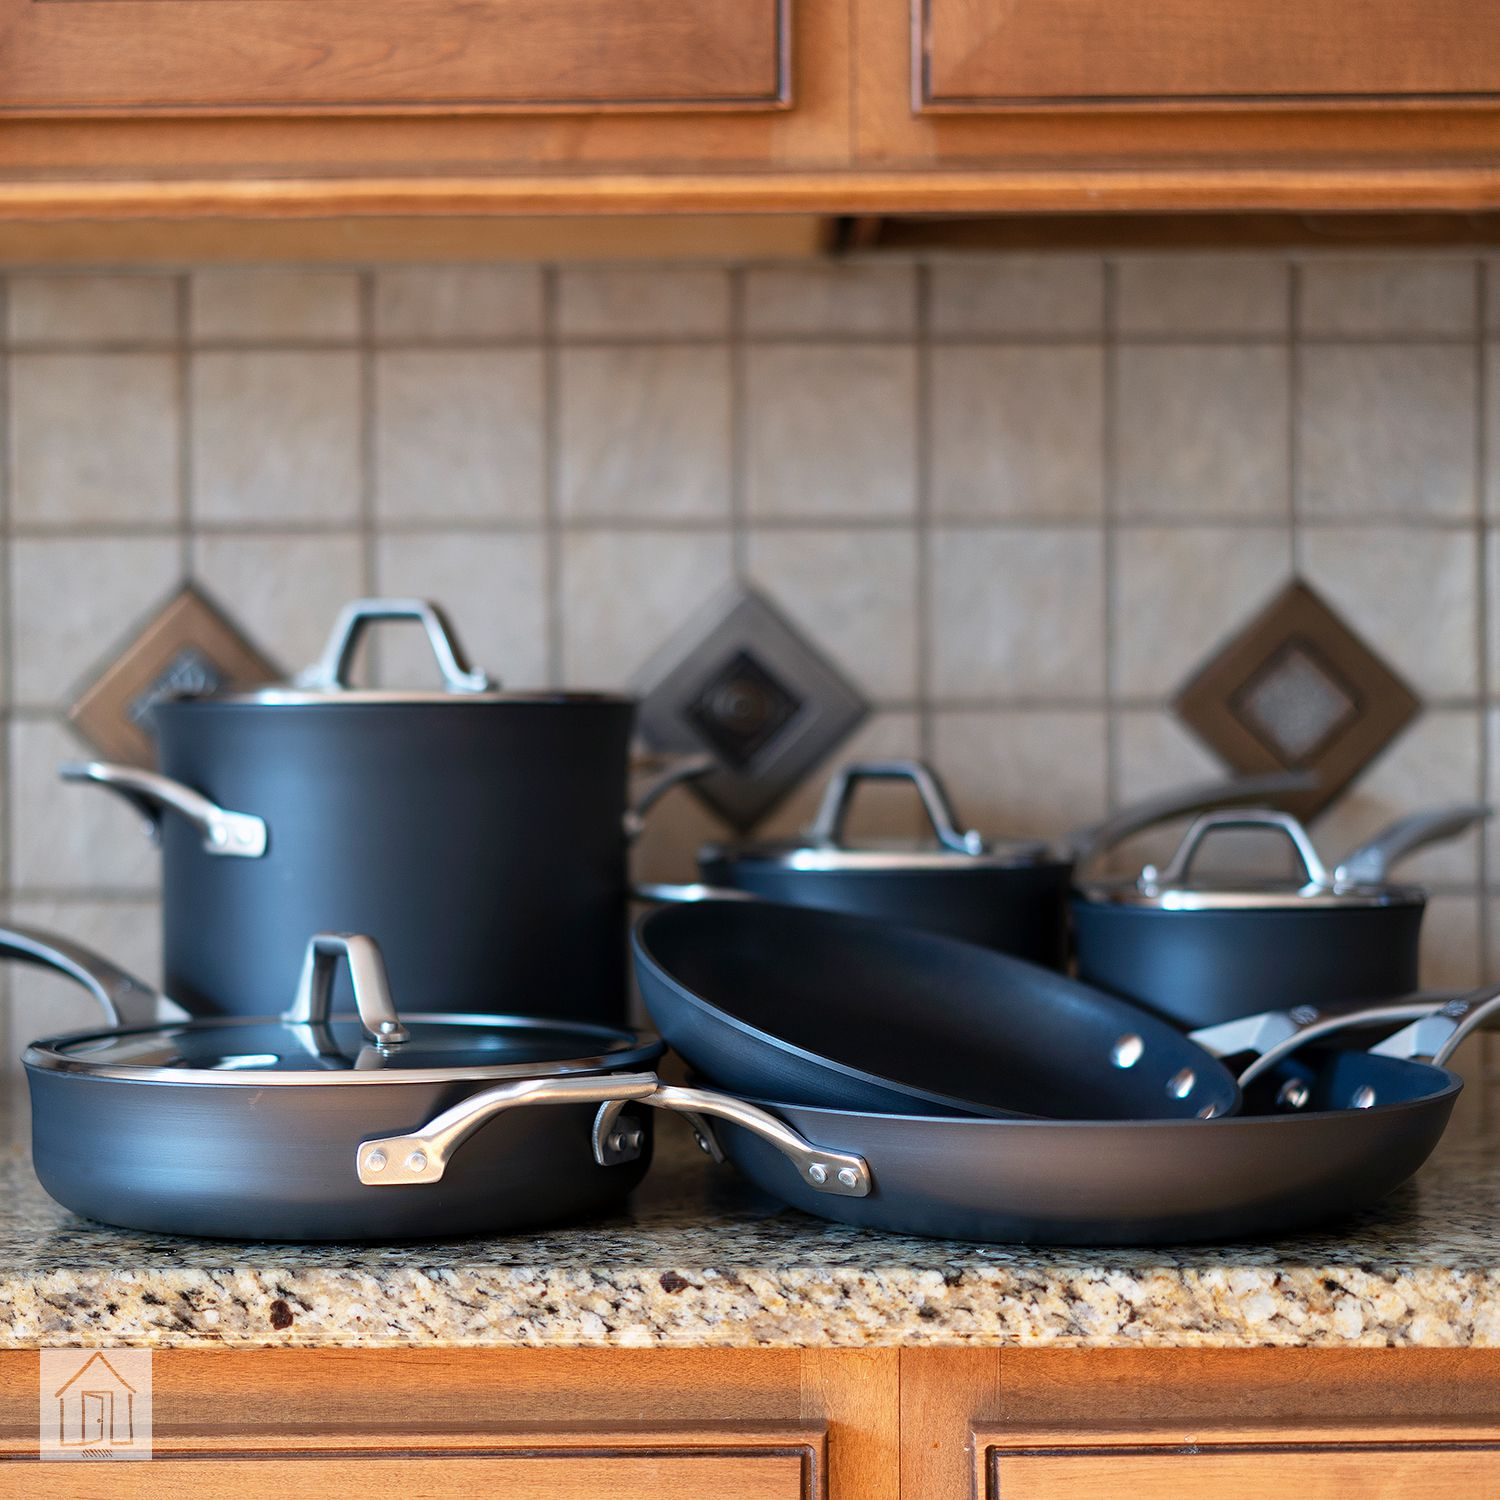 How to Clean Calphalon Pans 1